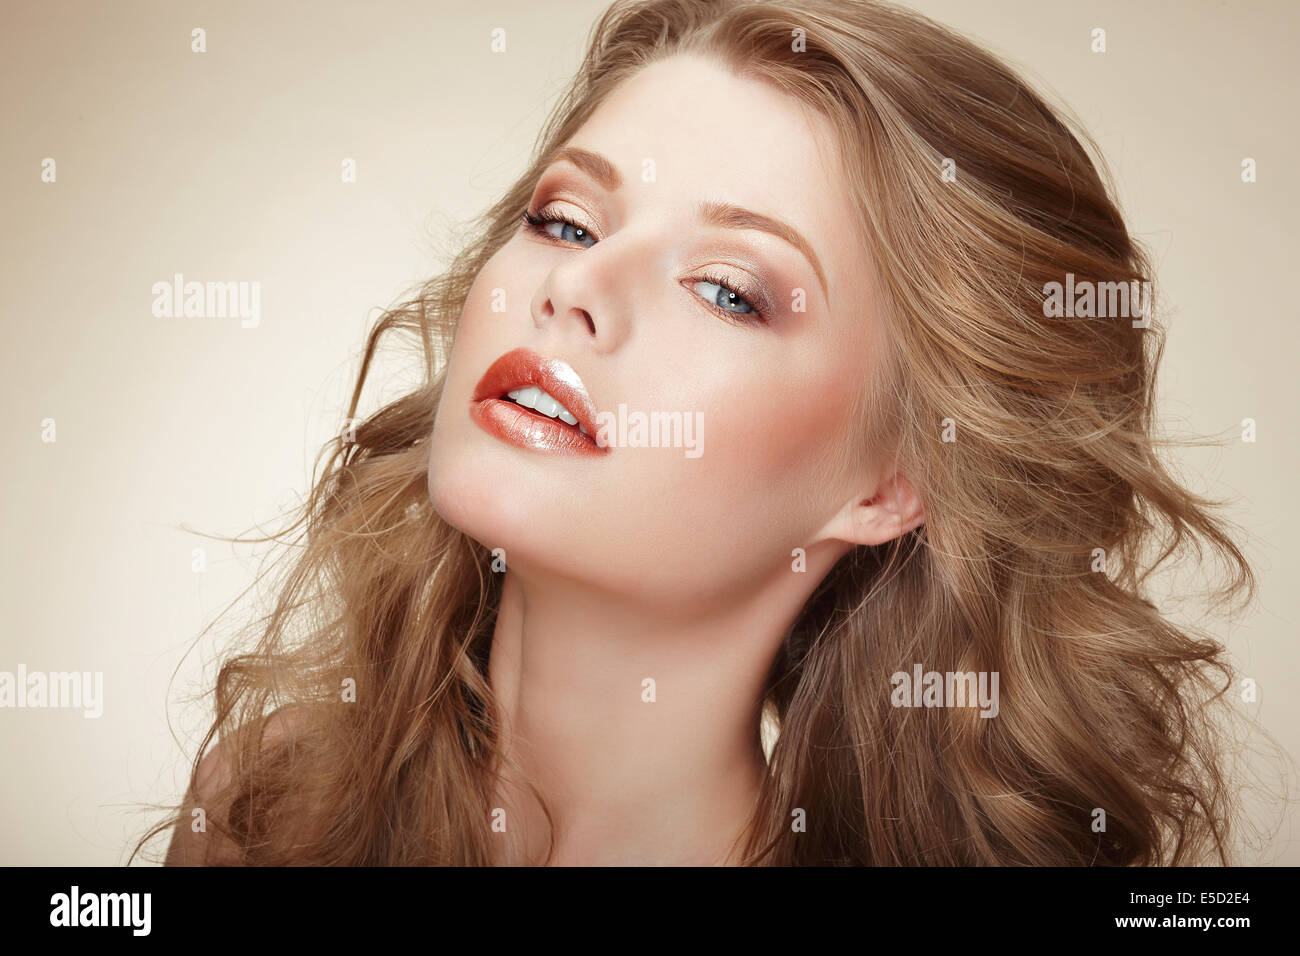 Genuine Comely Woman with Flossy Whity-Brown Hair - Stock Image